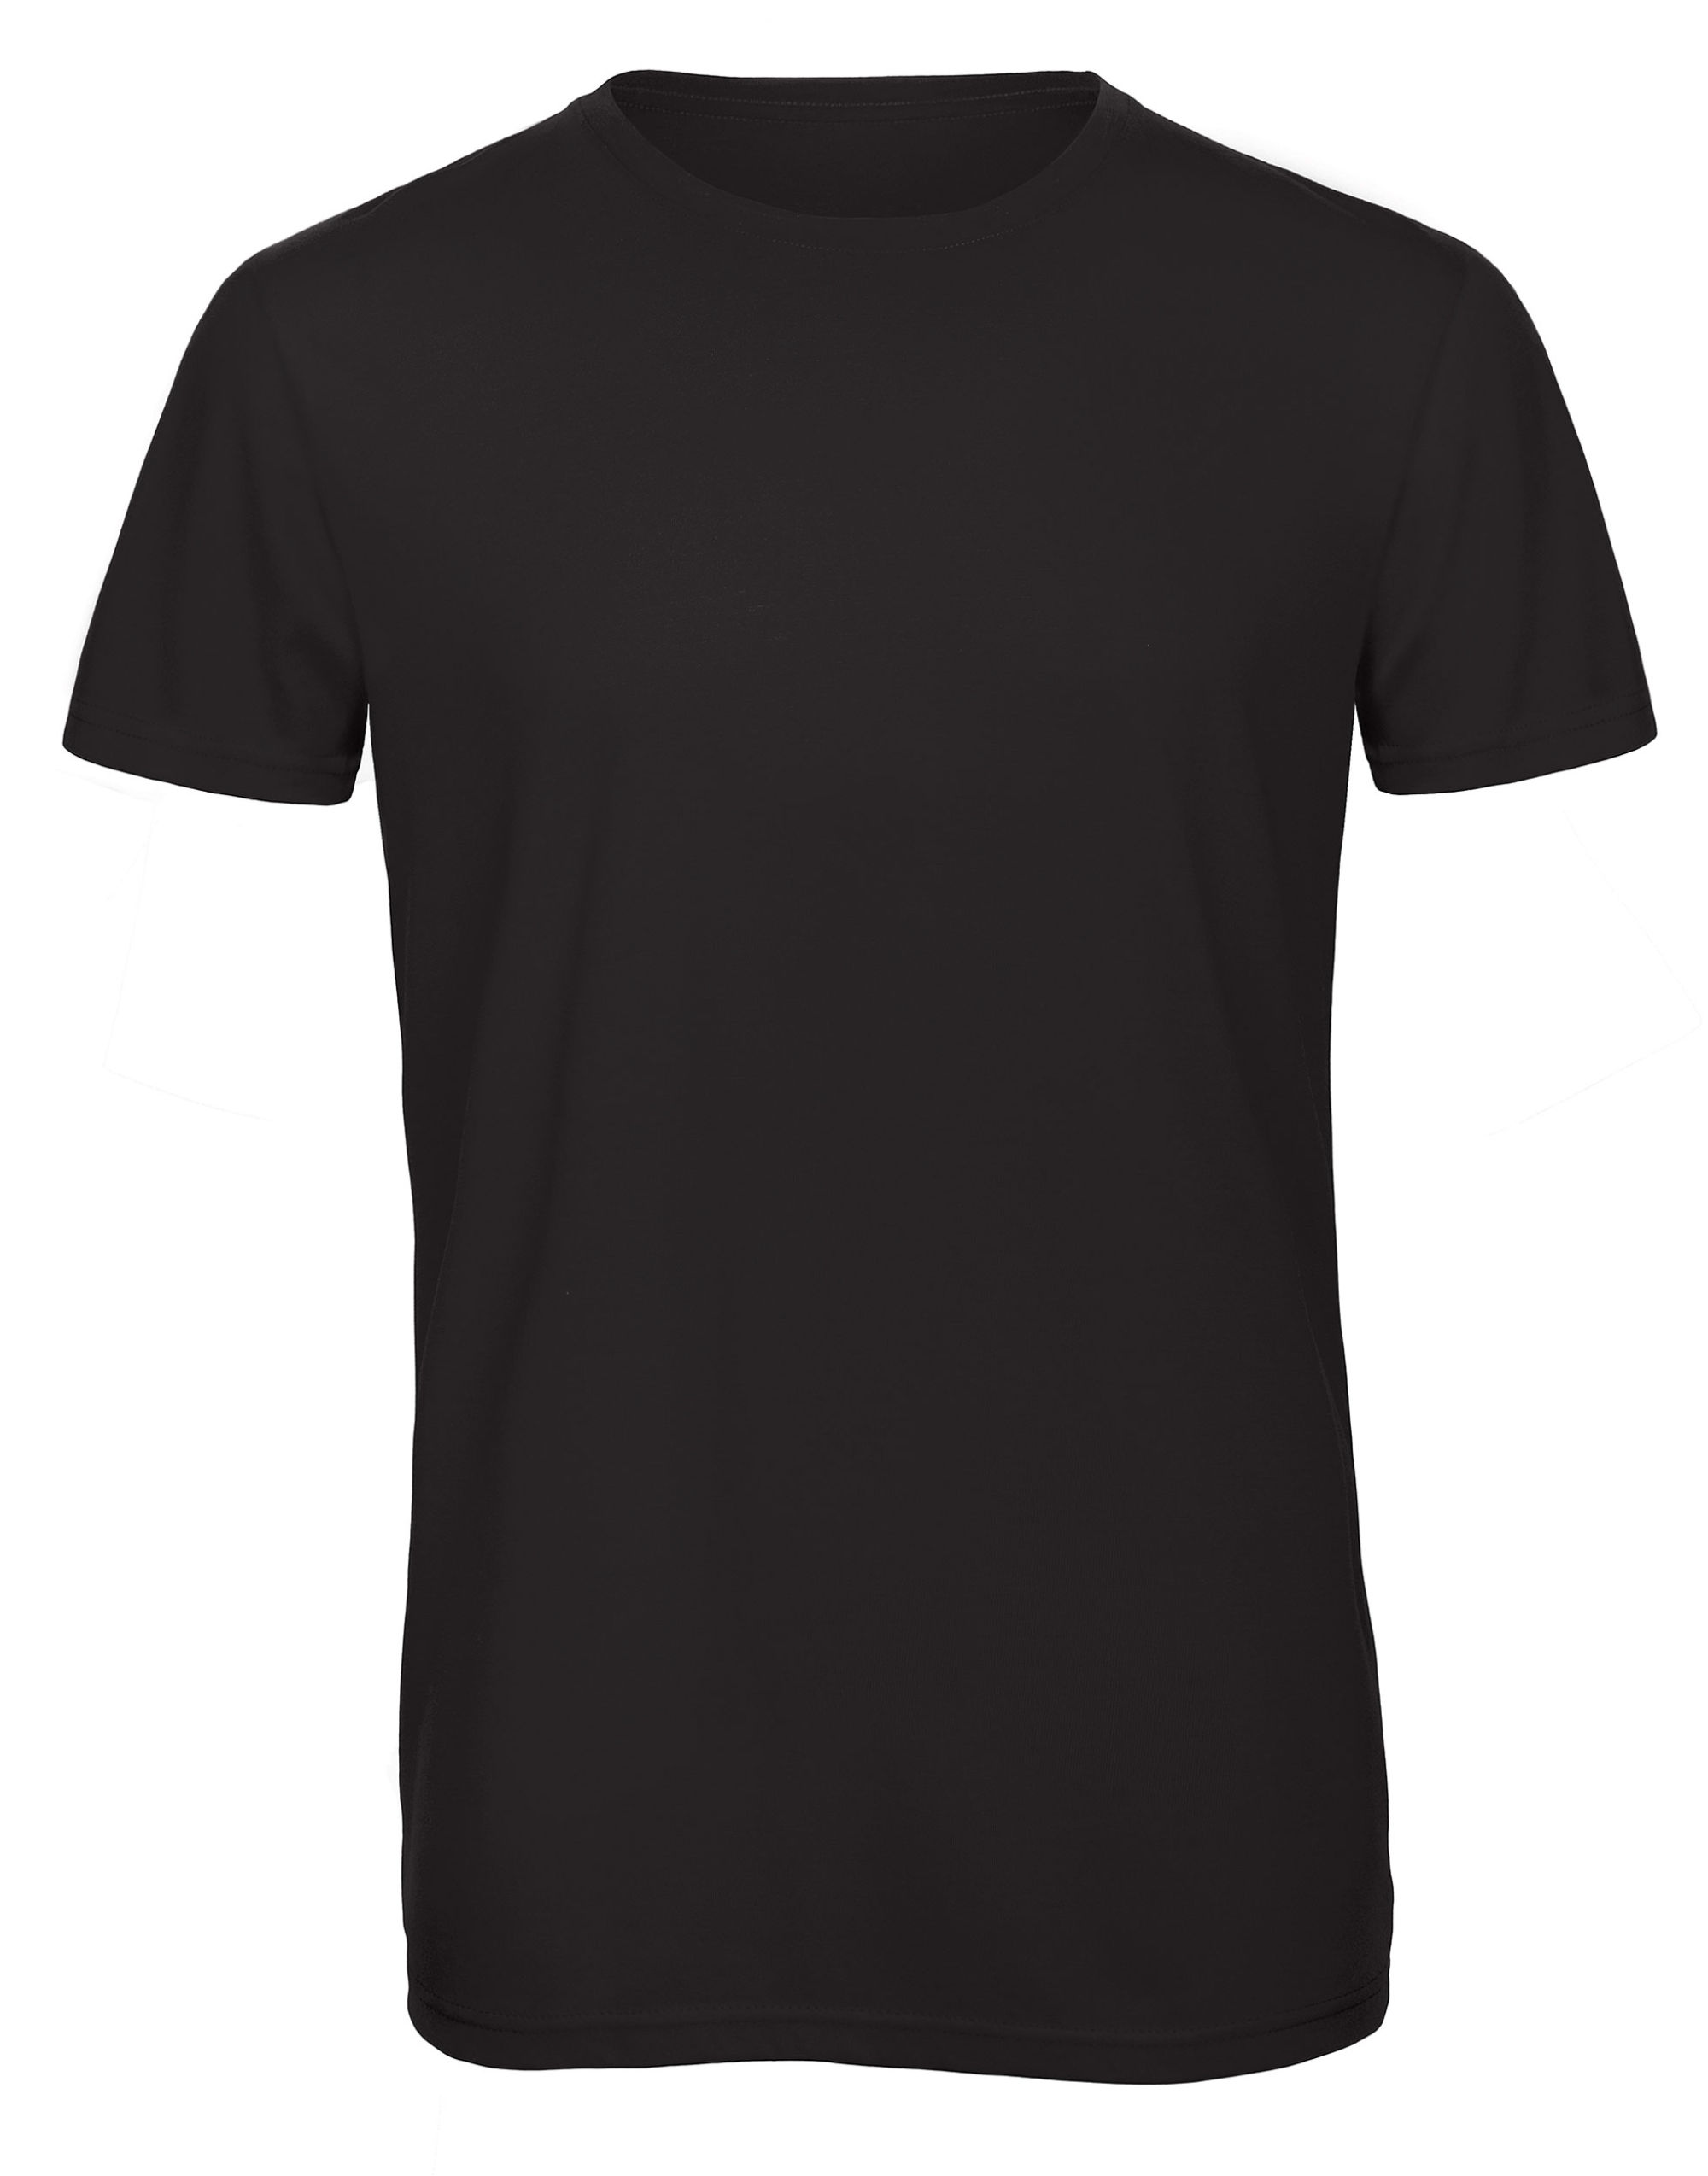 B&c Mens Favourite Triblend Tee